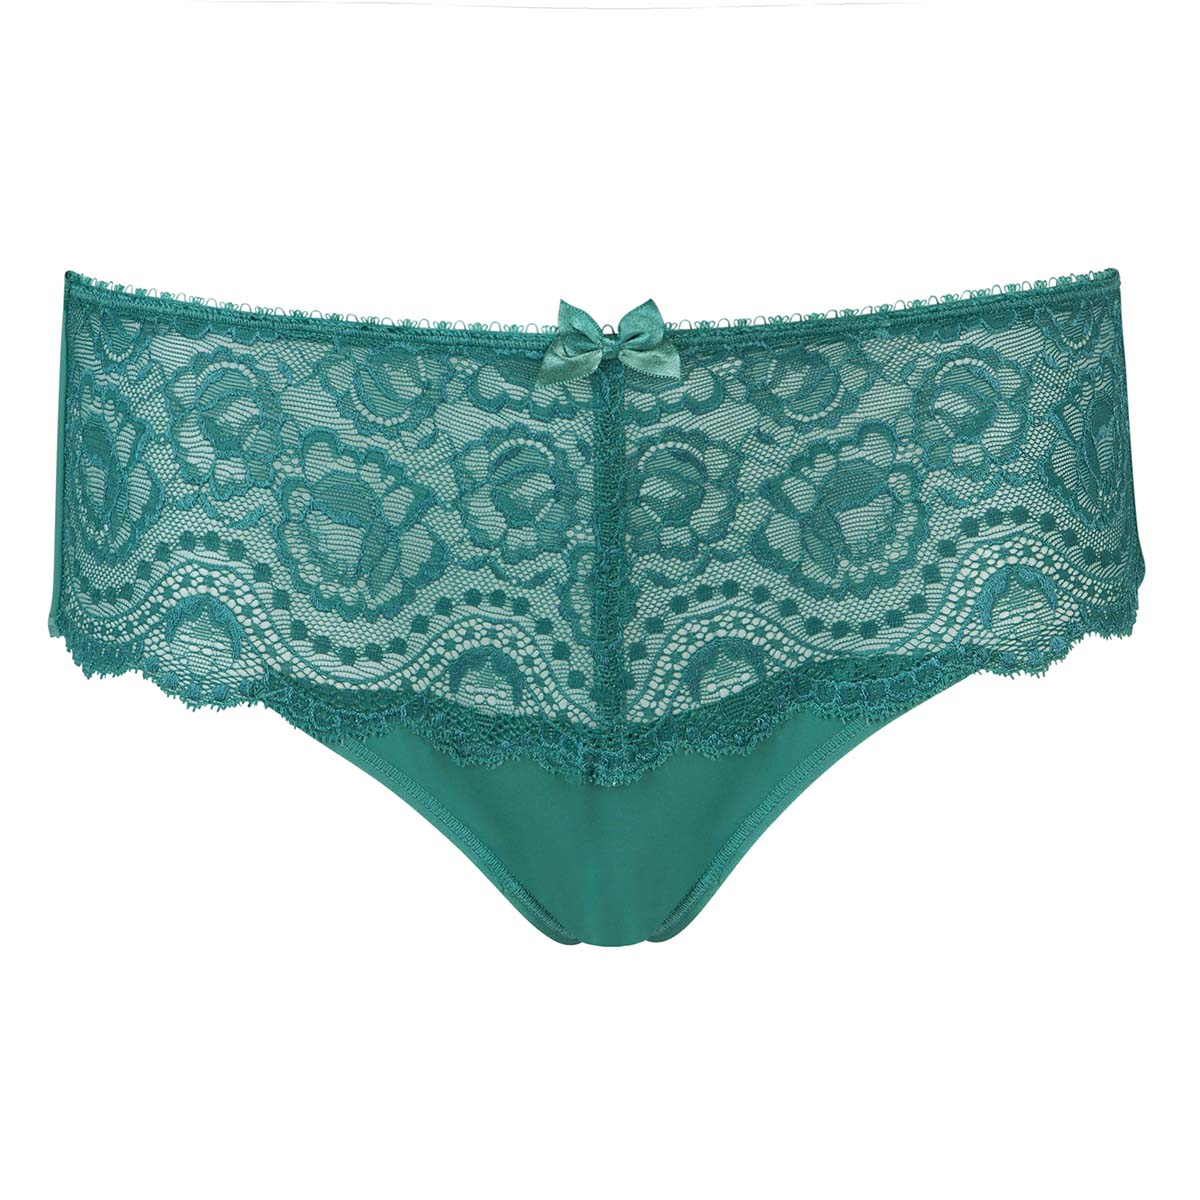 Slip midi in pizzo verde scuro Flowery Lace, , PLAYTEX